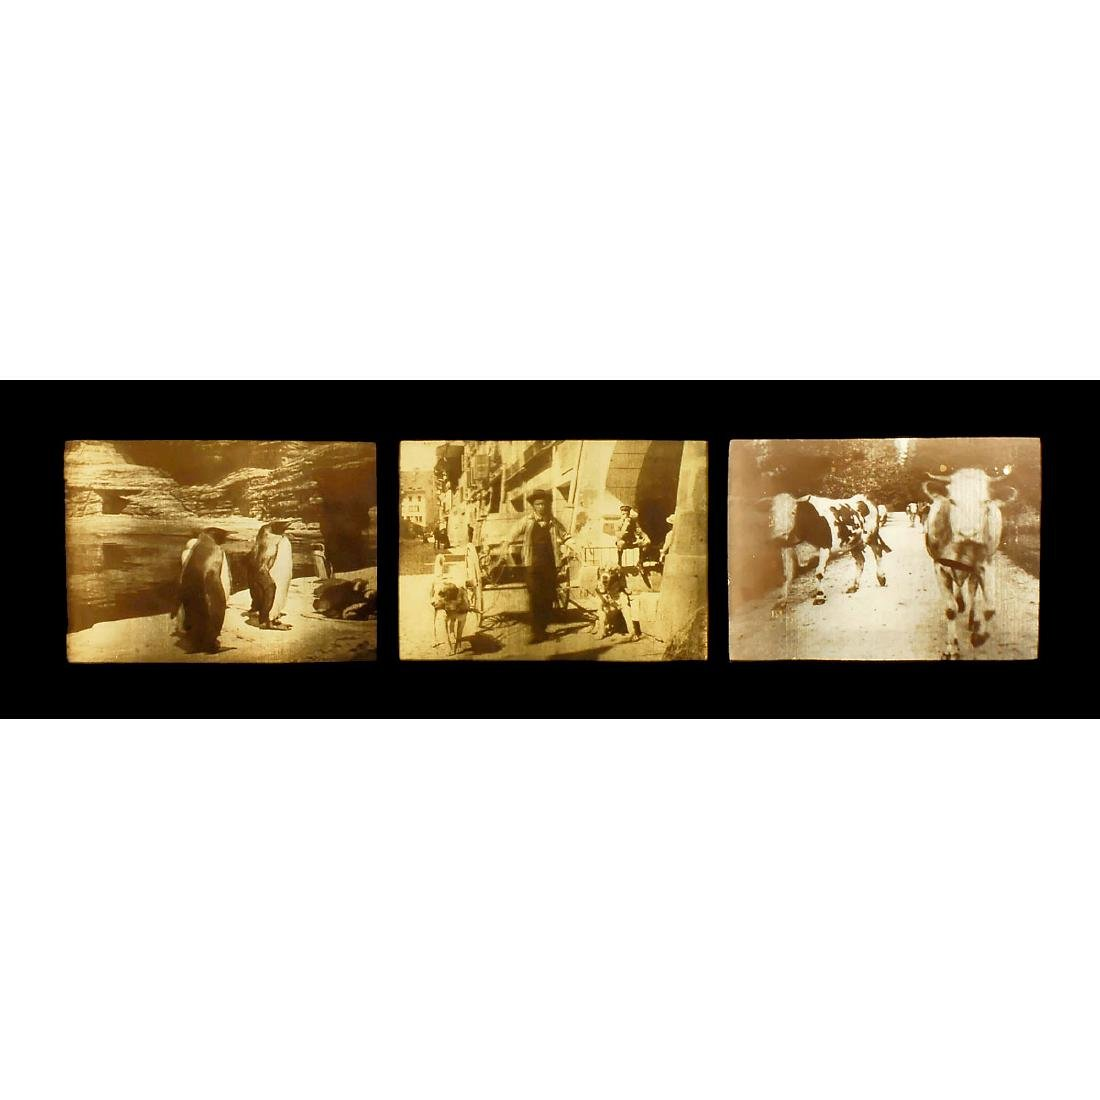 3 x 3D Lenticular Picture by W.R. Hess, c. 1912